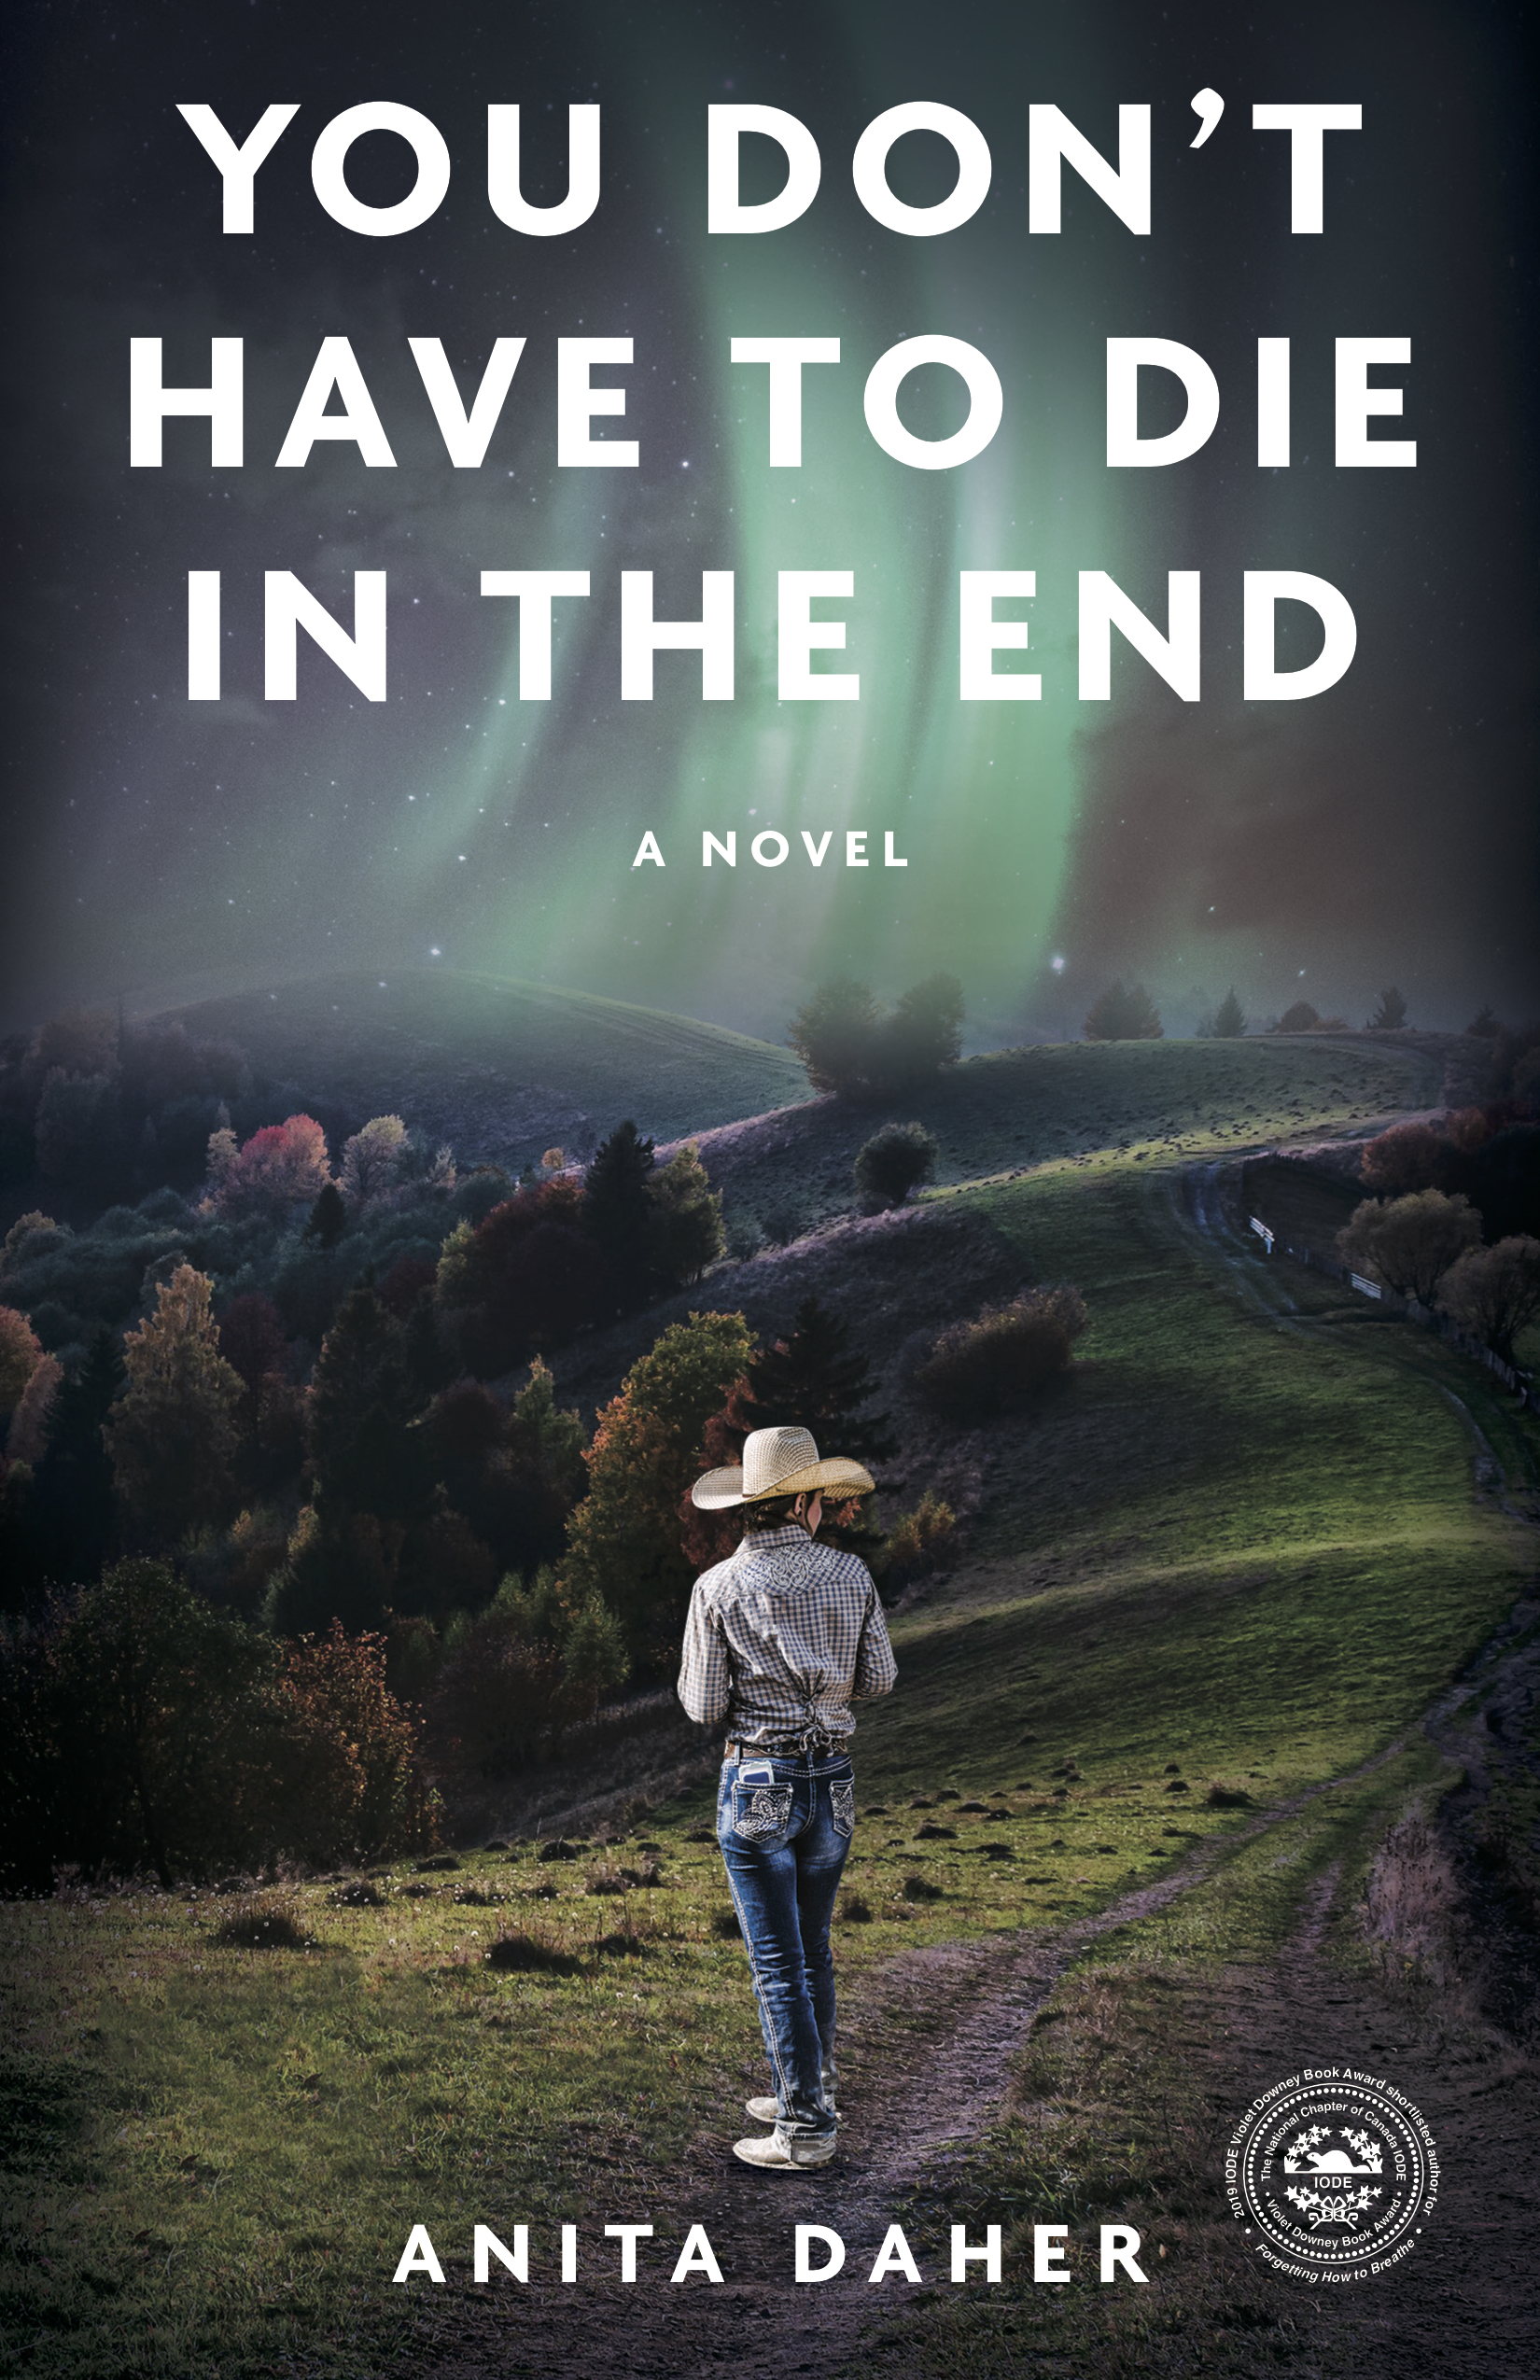 Daher Anita You Dont Have to Die in the End Book Jacket